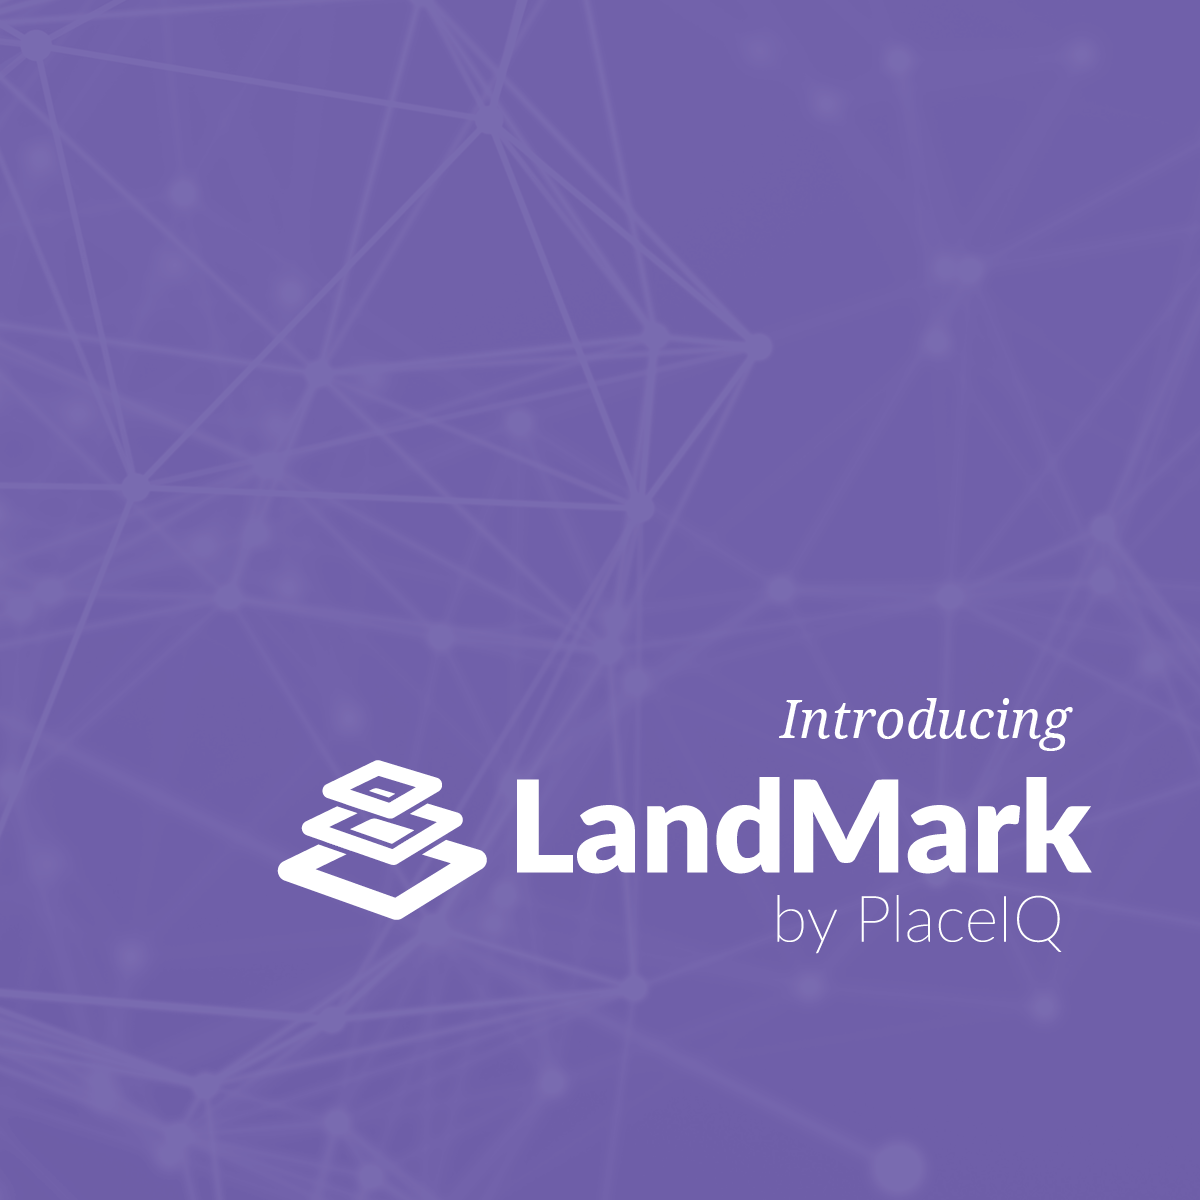 Introducing LandMark by PlaceIQ